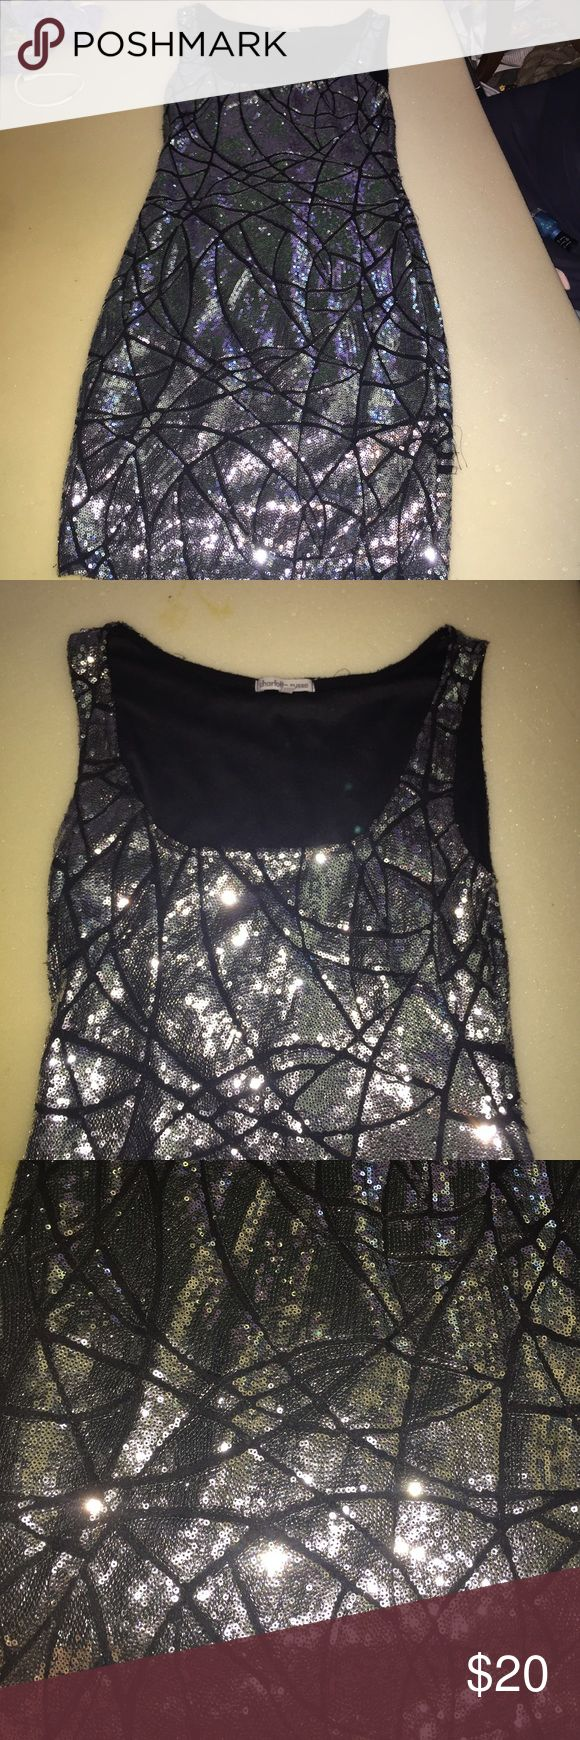 Charlotte Rousse body con sequined dress So freaking cute!!! Part dress perfect for a big night out inside fabric is soft not scratch all sequins are intact threading gets loose and frays at the sides but is easily trimmed off with no damage to dress :) Charlotte Russe Dresses Mini